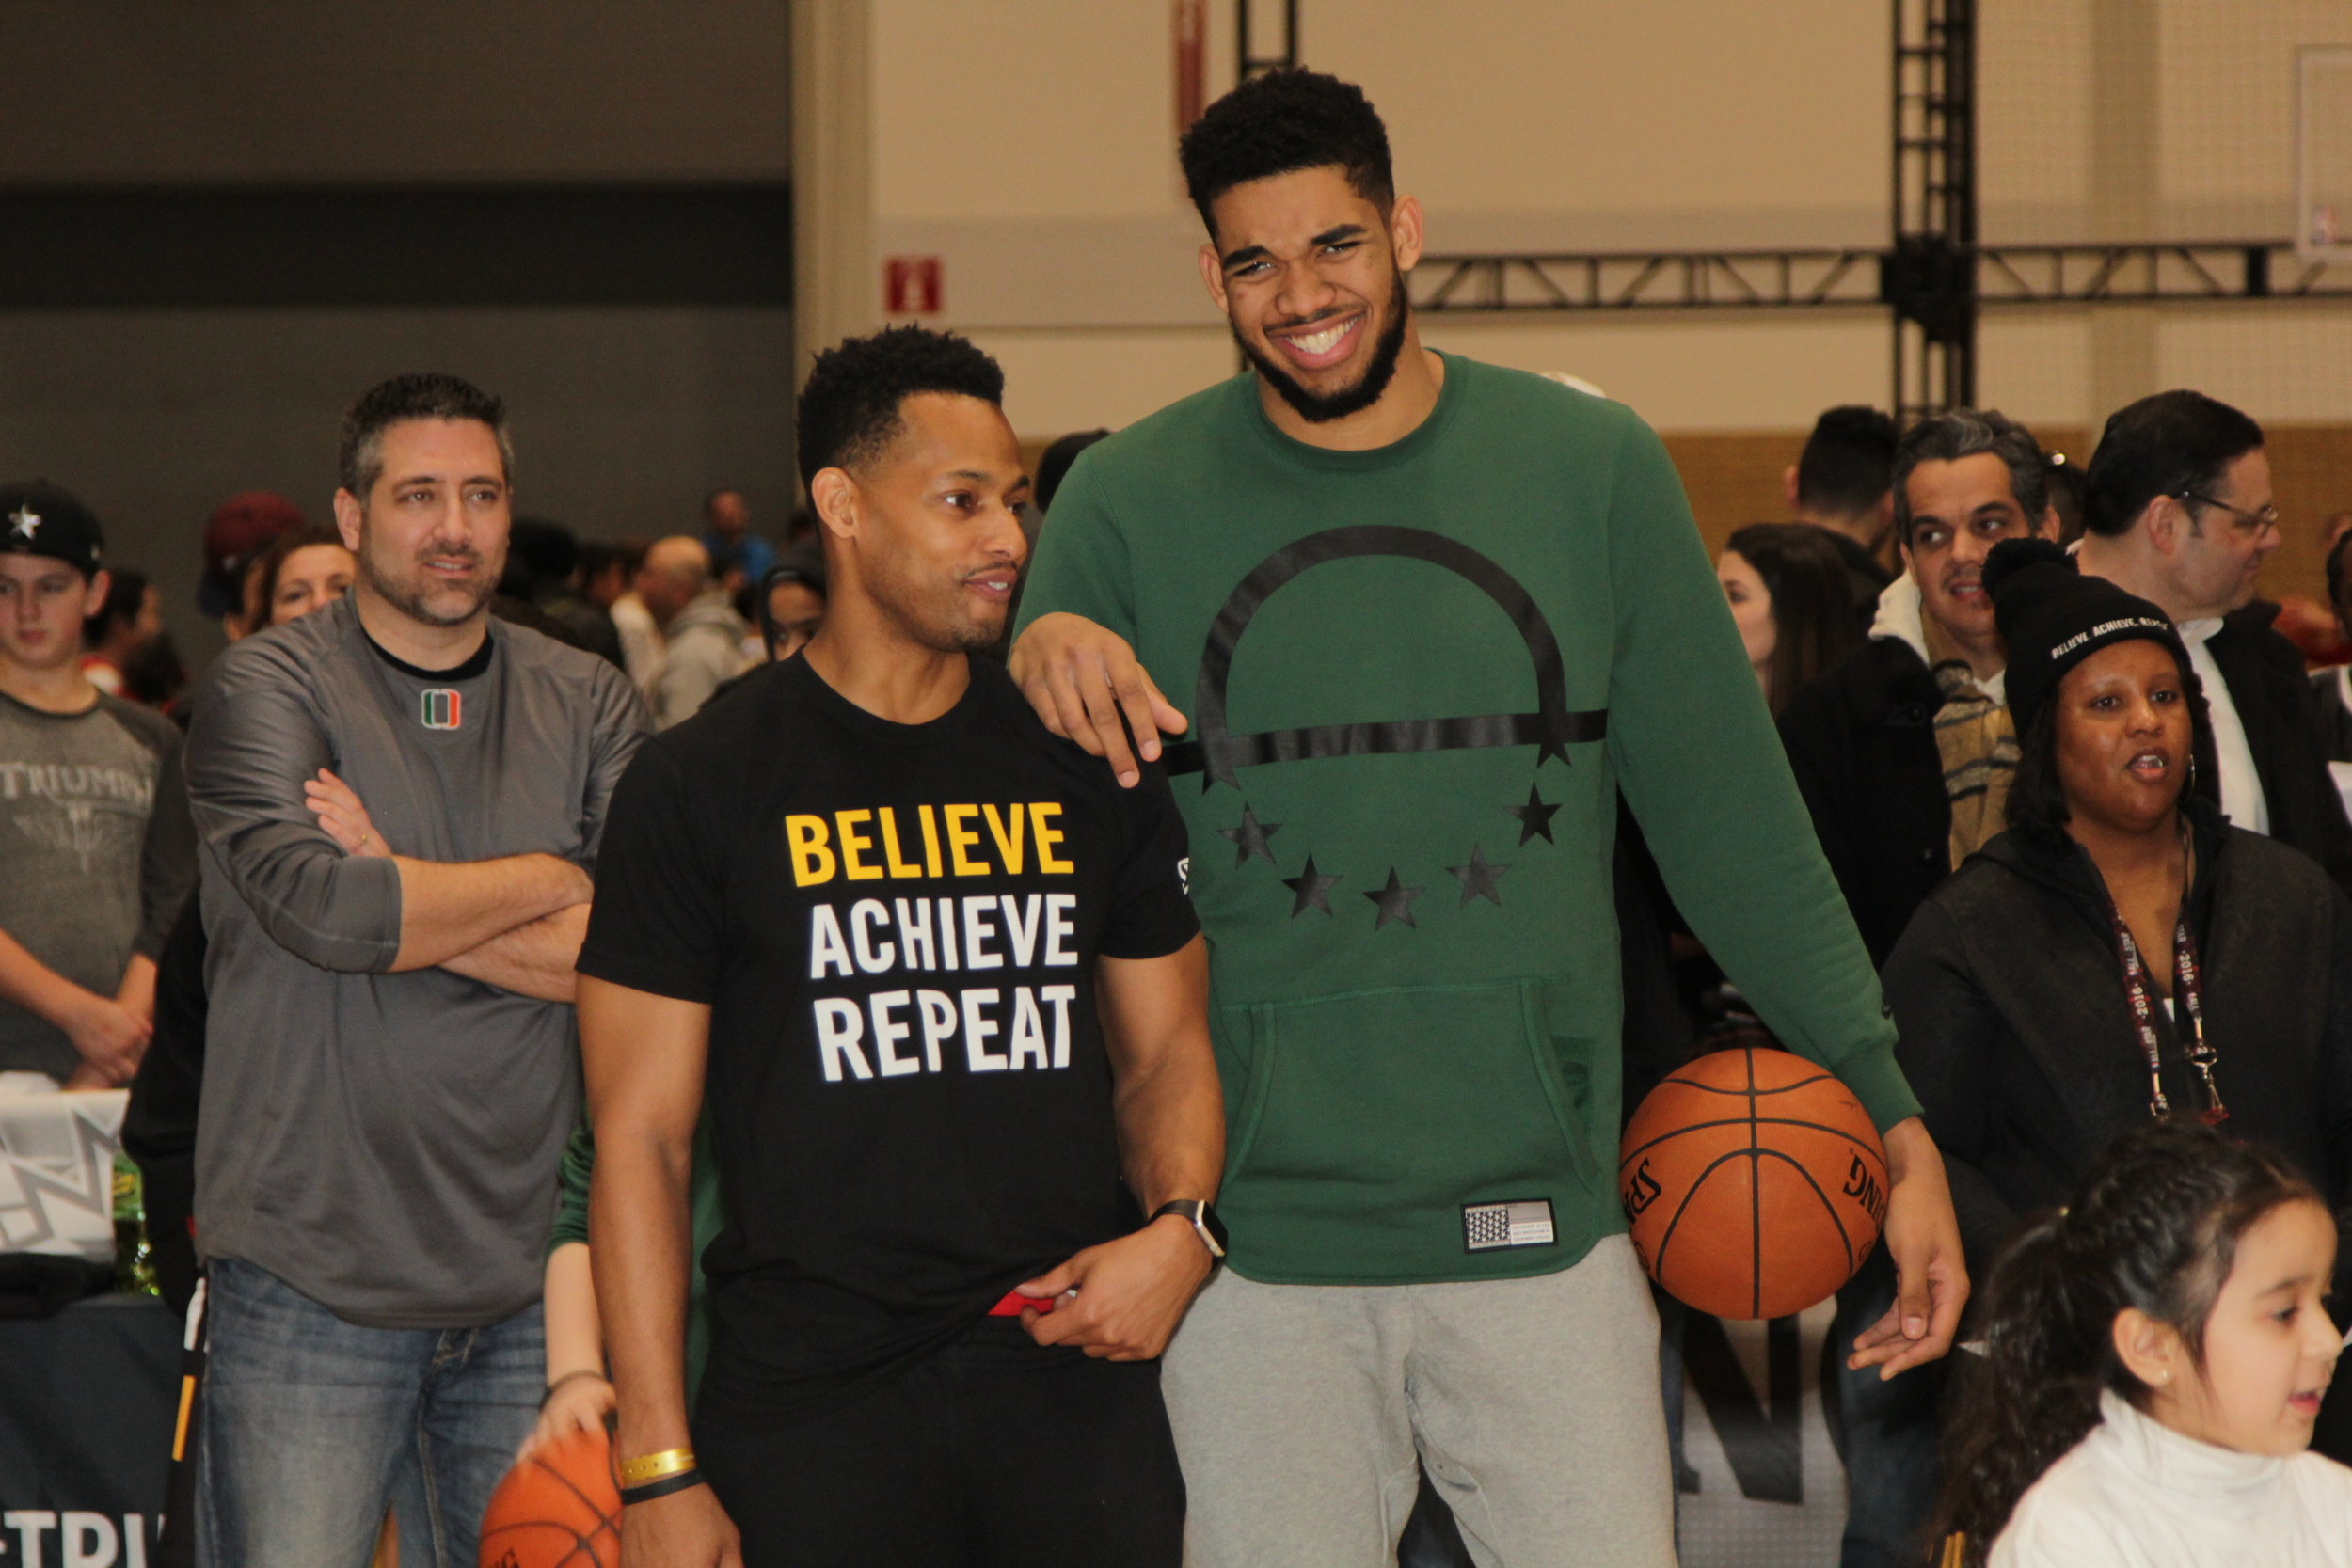 Nick Graham and NBA star Karl-Anthony Towns during an event at the 2016 NBA All-Star weekend.